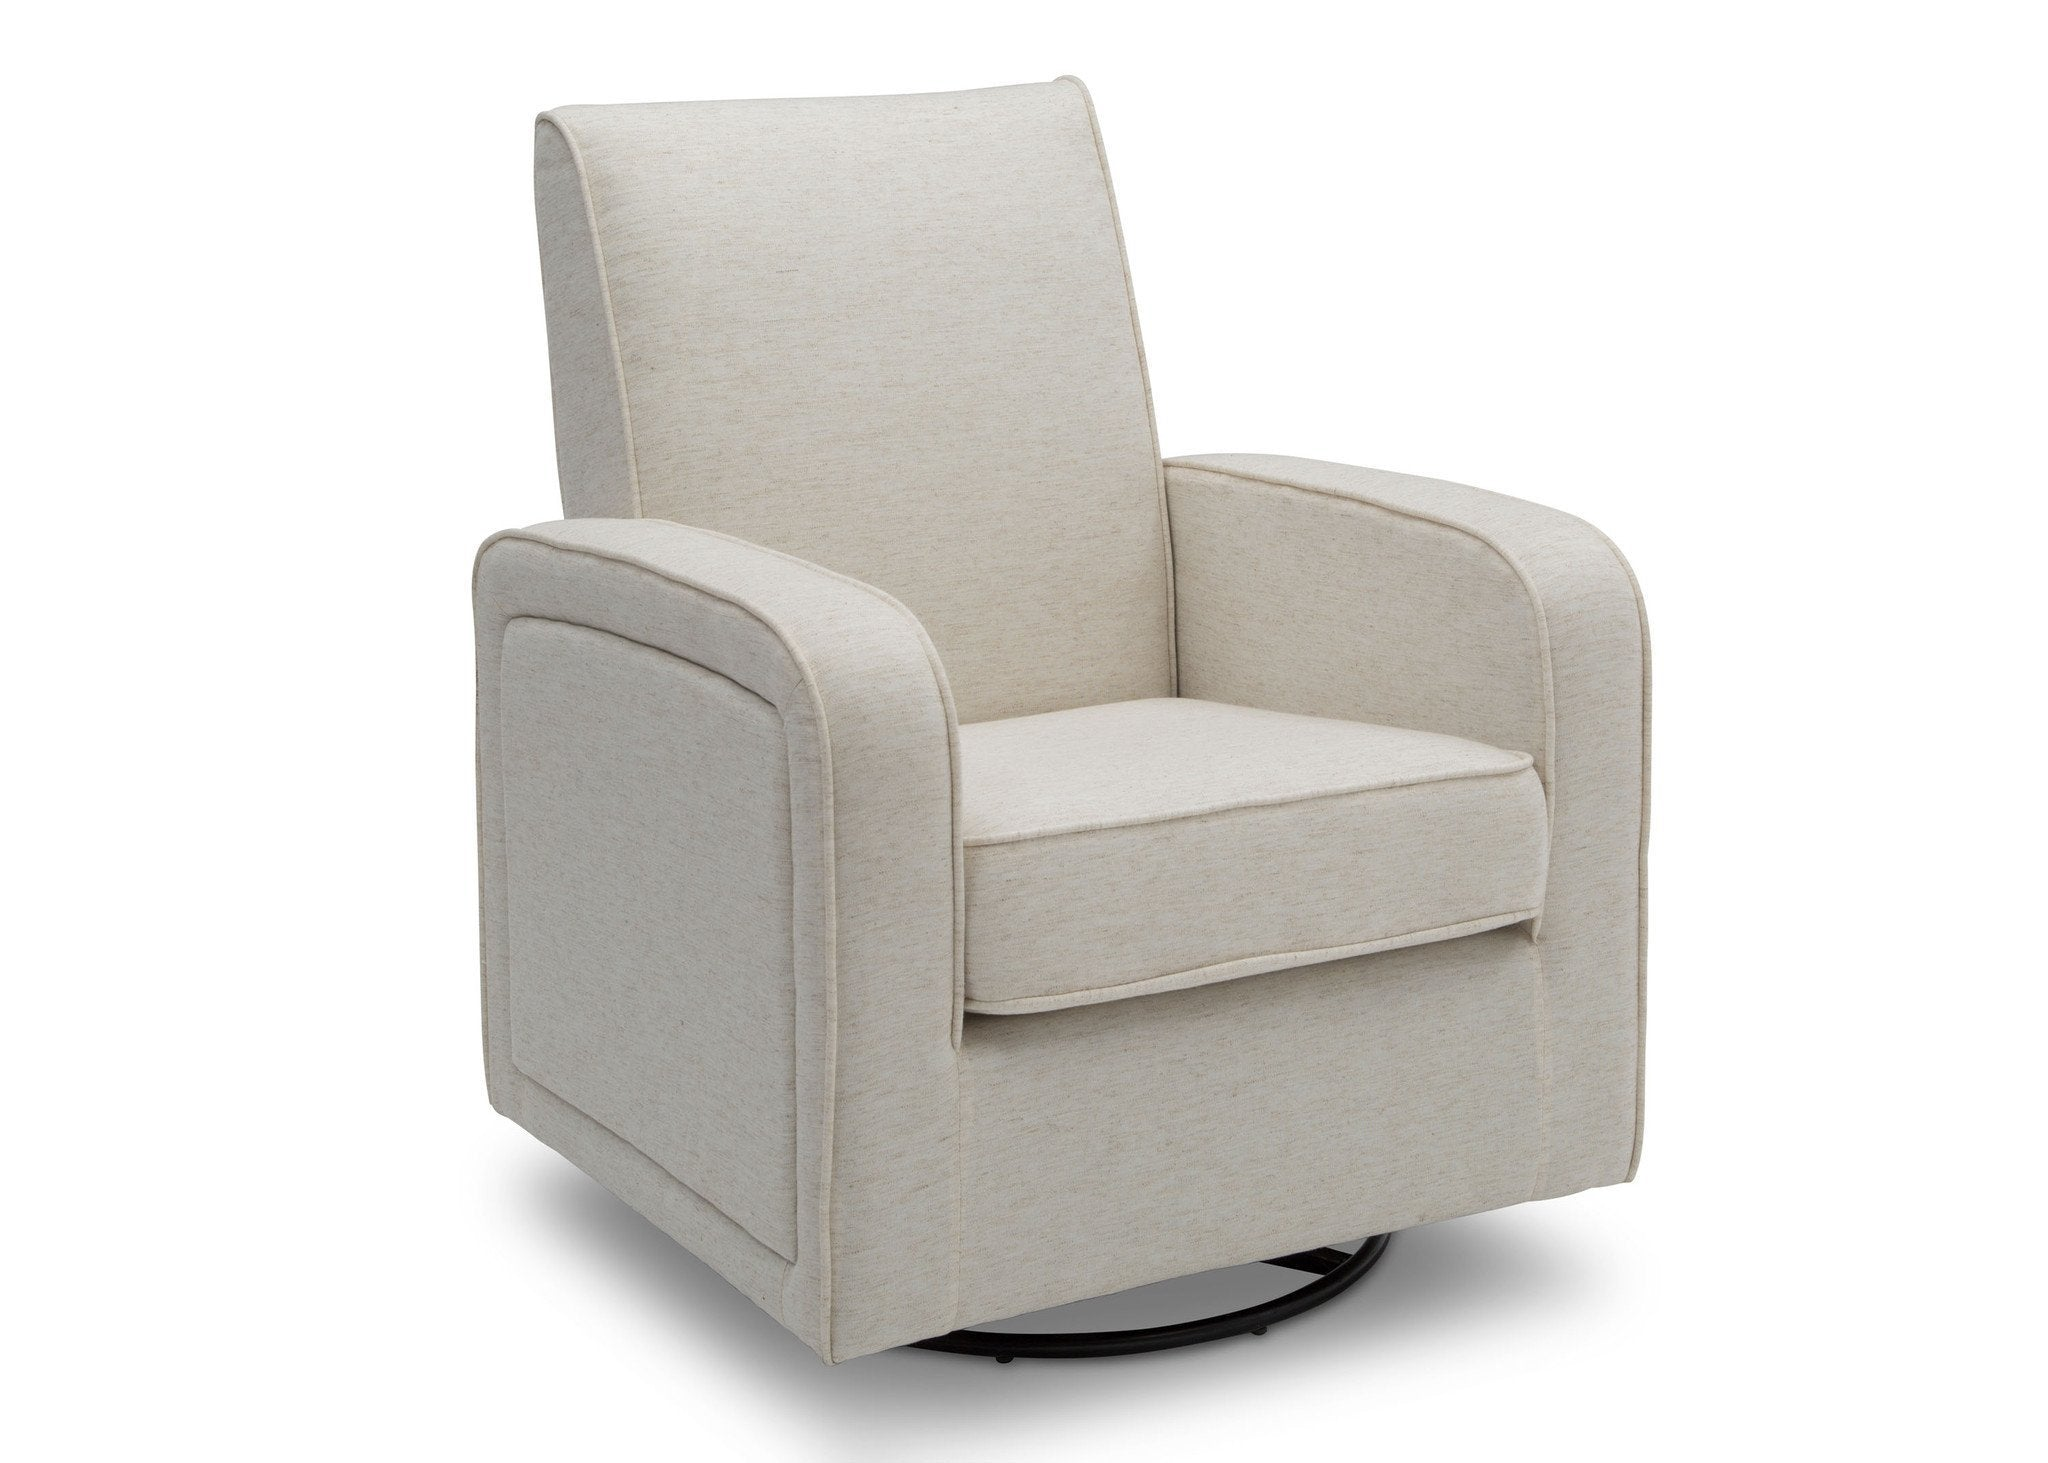 Delta Children Sand (921) Charlotte Nursery Glider Swivel Rocker Chair, right side view, b3b